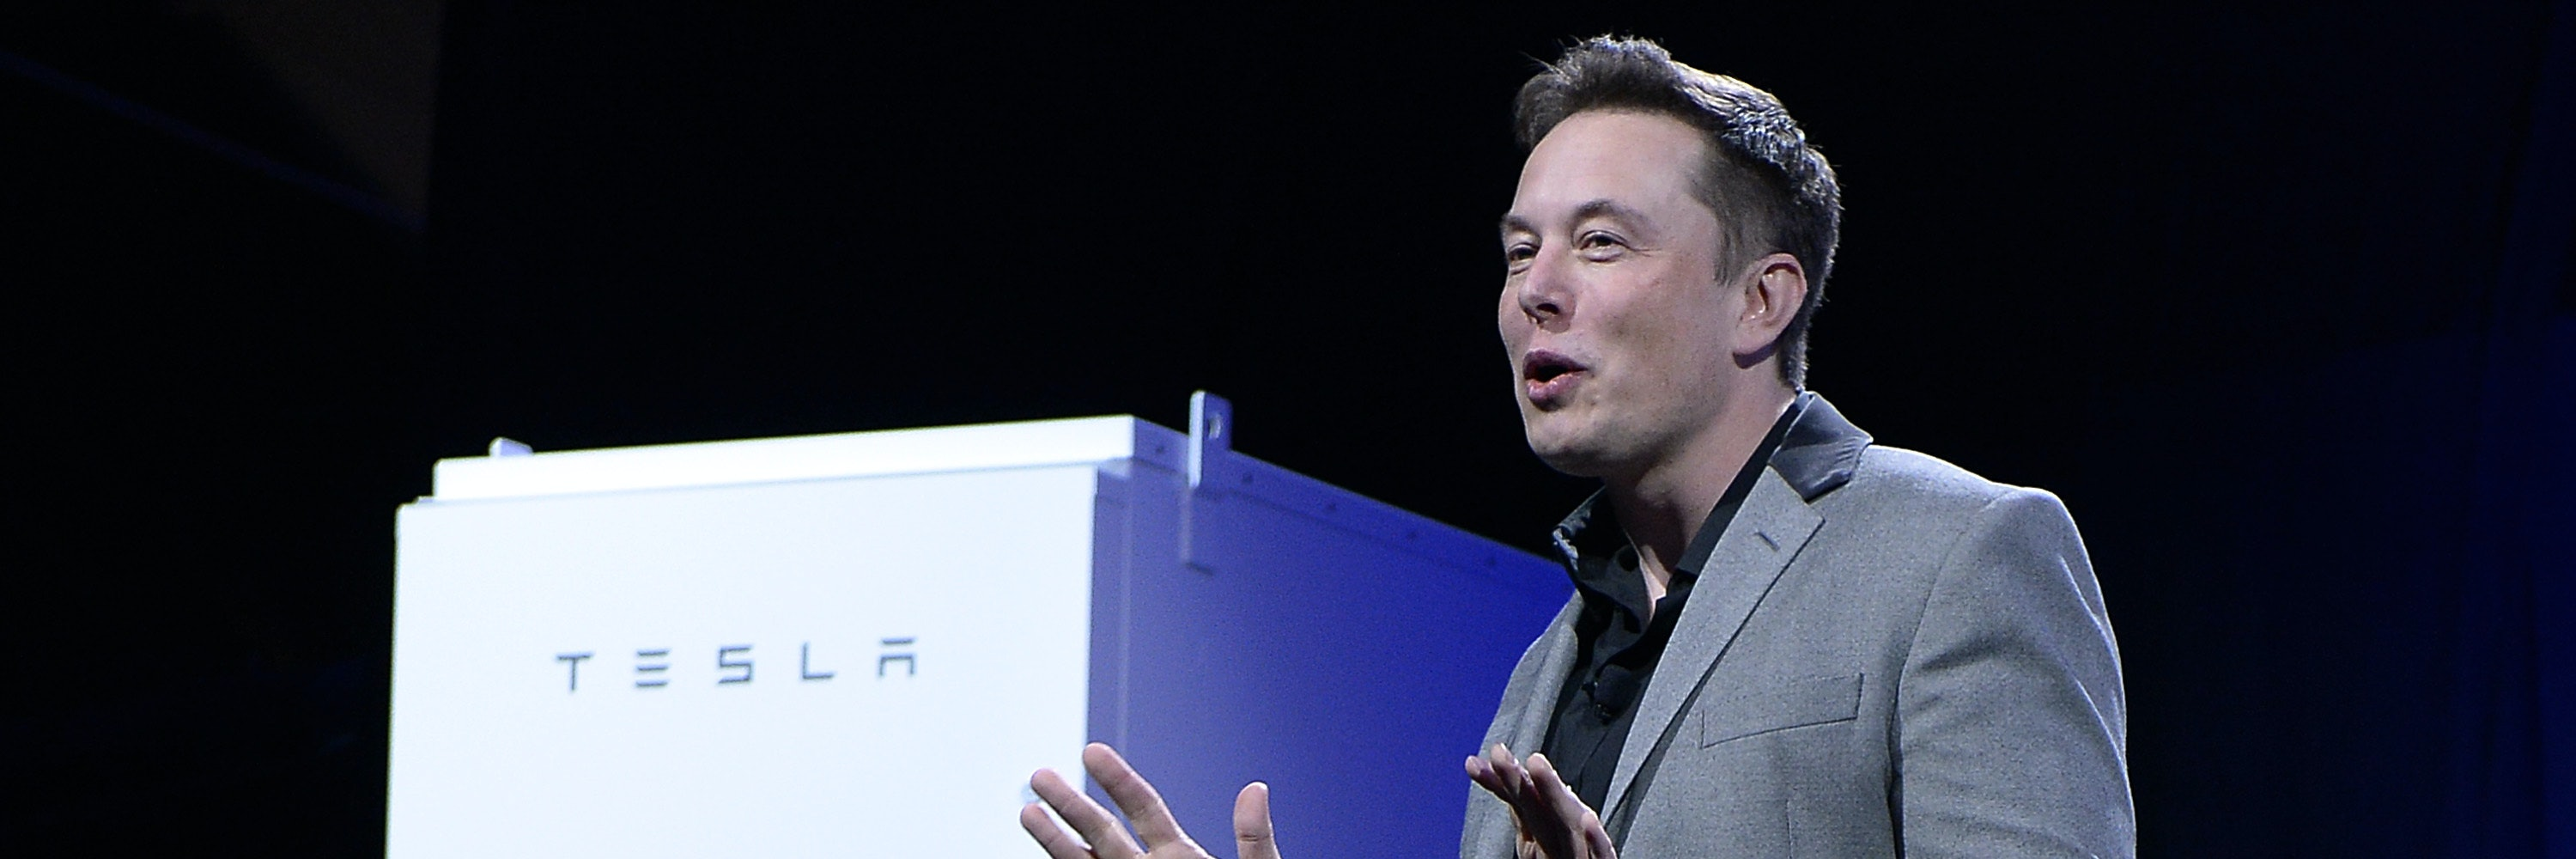 LOS ANGELES, CA - APRIL 30:  Elon Musk, CEO of Tesla, with a Powerpack unit the background unveils suit of batteries for homes, businesses, and utilities at Tesla Design Studio April 30, 2015 in Hawthorne, California. Musk unveiled the home battery named Powerwall with a selling price of $3500 for 10kWh and $3000 for 7kWh and very large utility pack called Powerpack. (Photo by Kevork Djansezian/Getty Images)